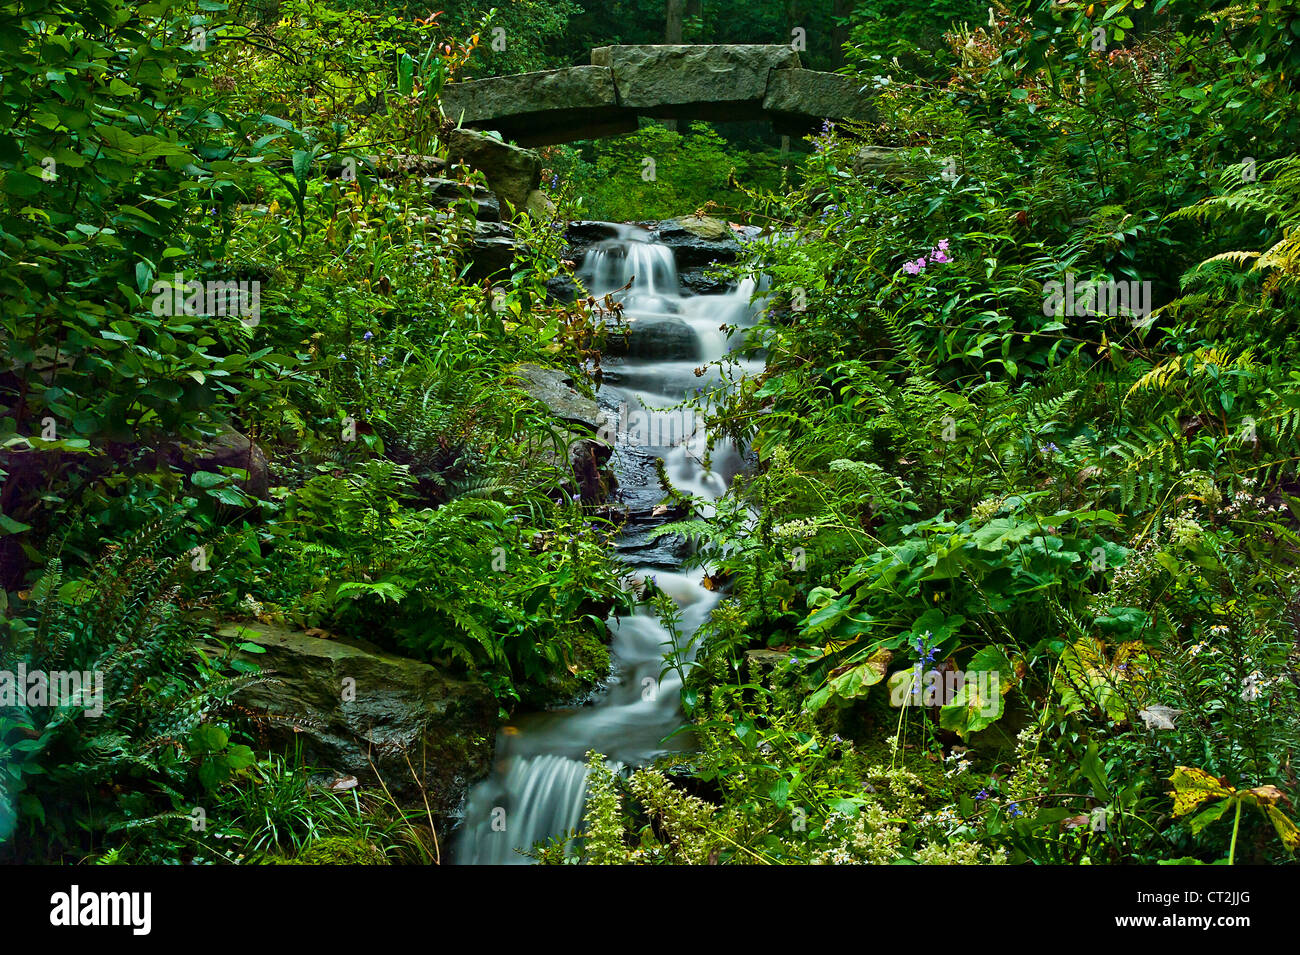 gently meandering stream, Delaware, USA - Stock Image